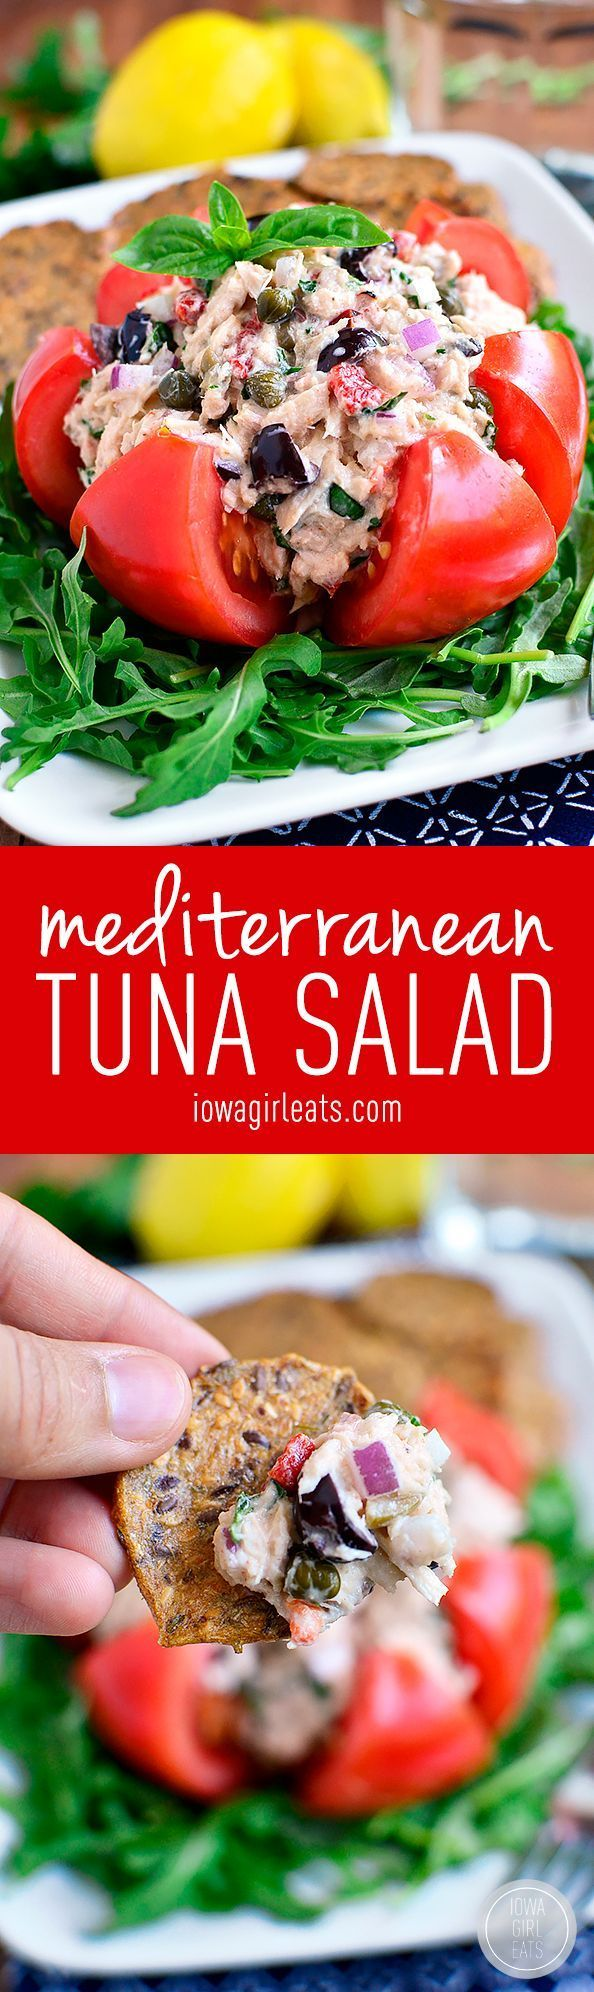 Mediterranean Tuna Salad is fresh and light - serve in a tomato, on a salad, between two slices of bread, or with crackers! #glutenfree